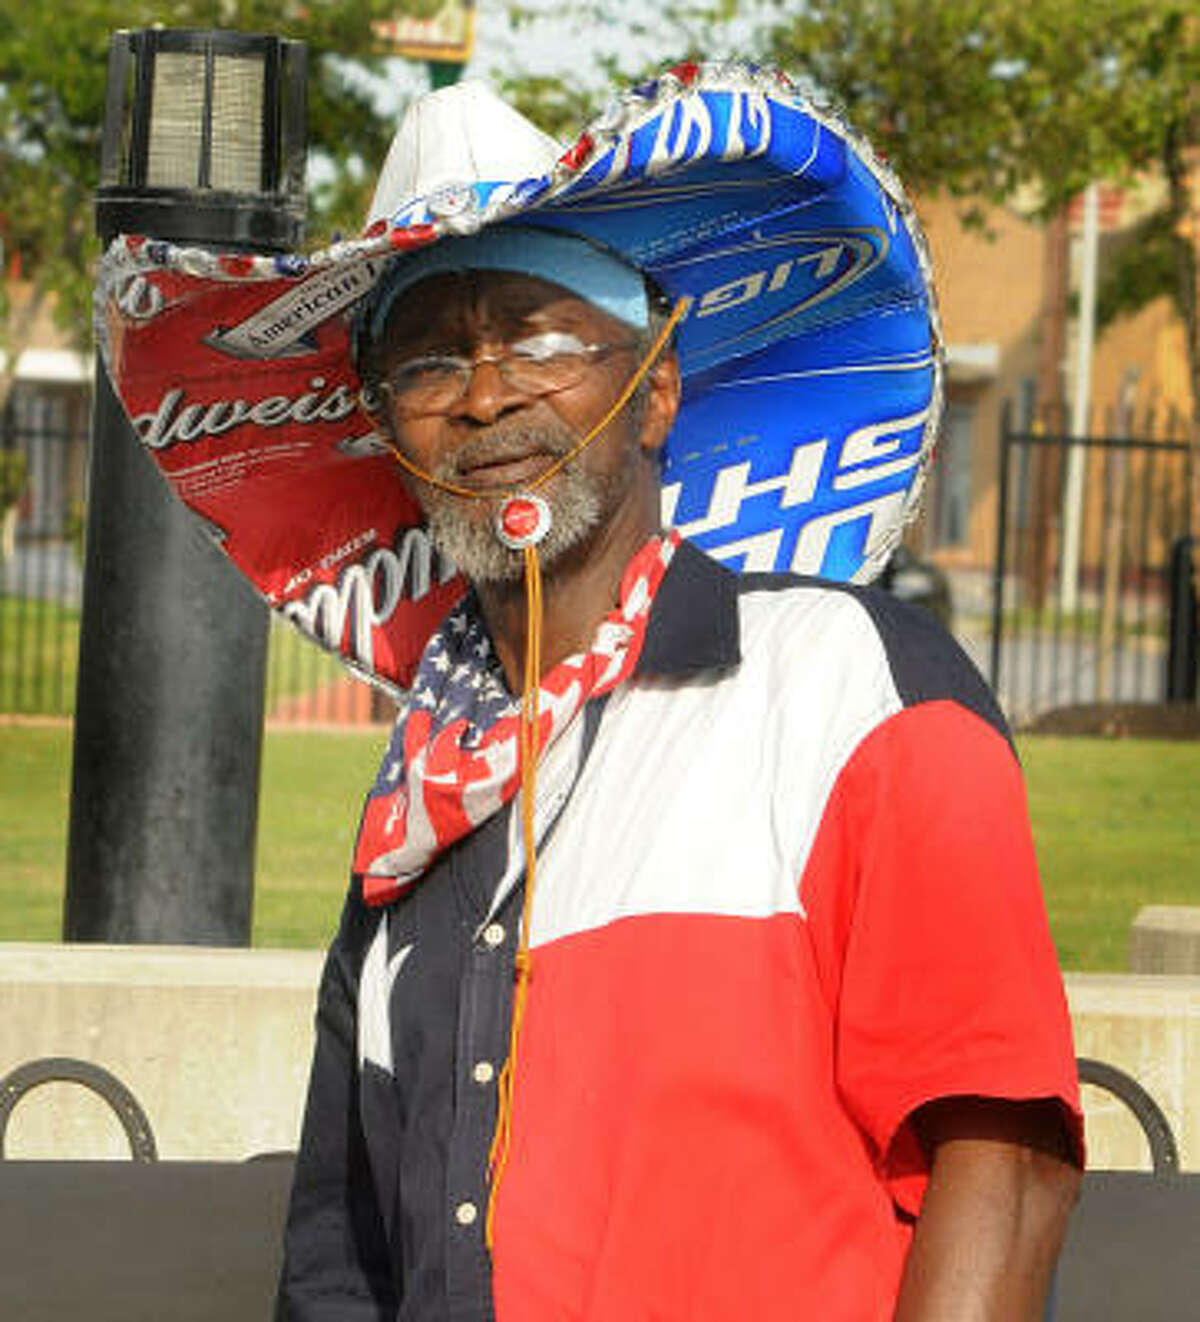 CONROE JAZZ: Billy Gipson, of Conroe, wears one of his handmade hats during the Conroe Jazz and More Society's Summer Music Fest at Heritage Place Park in downtown Conroe.